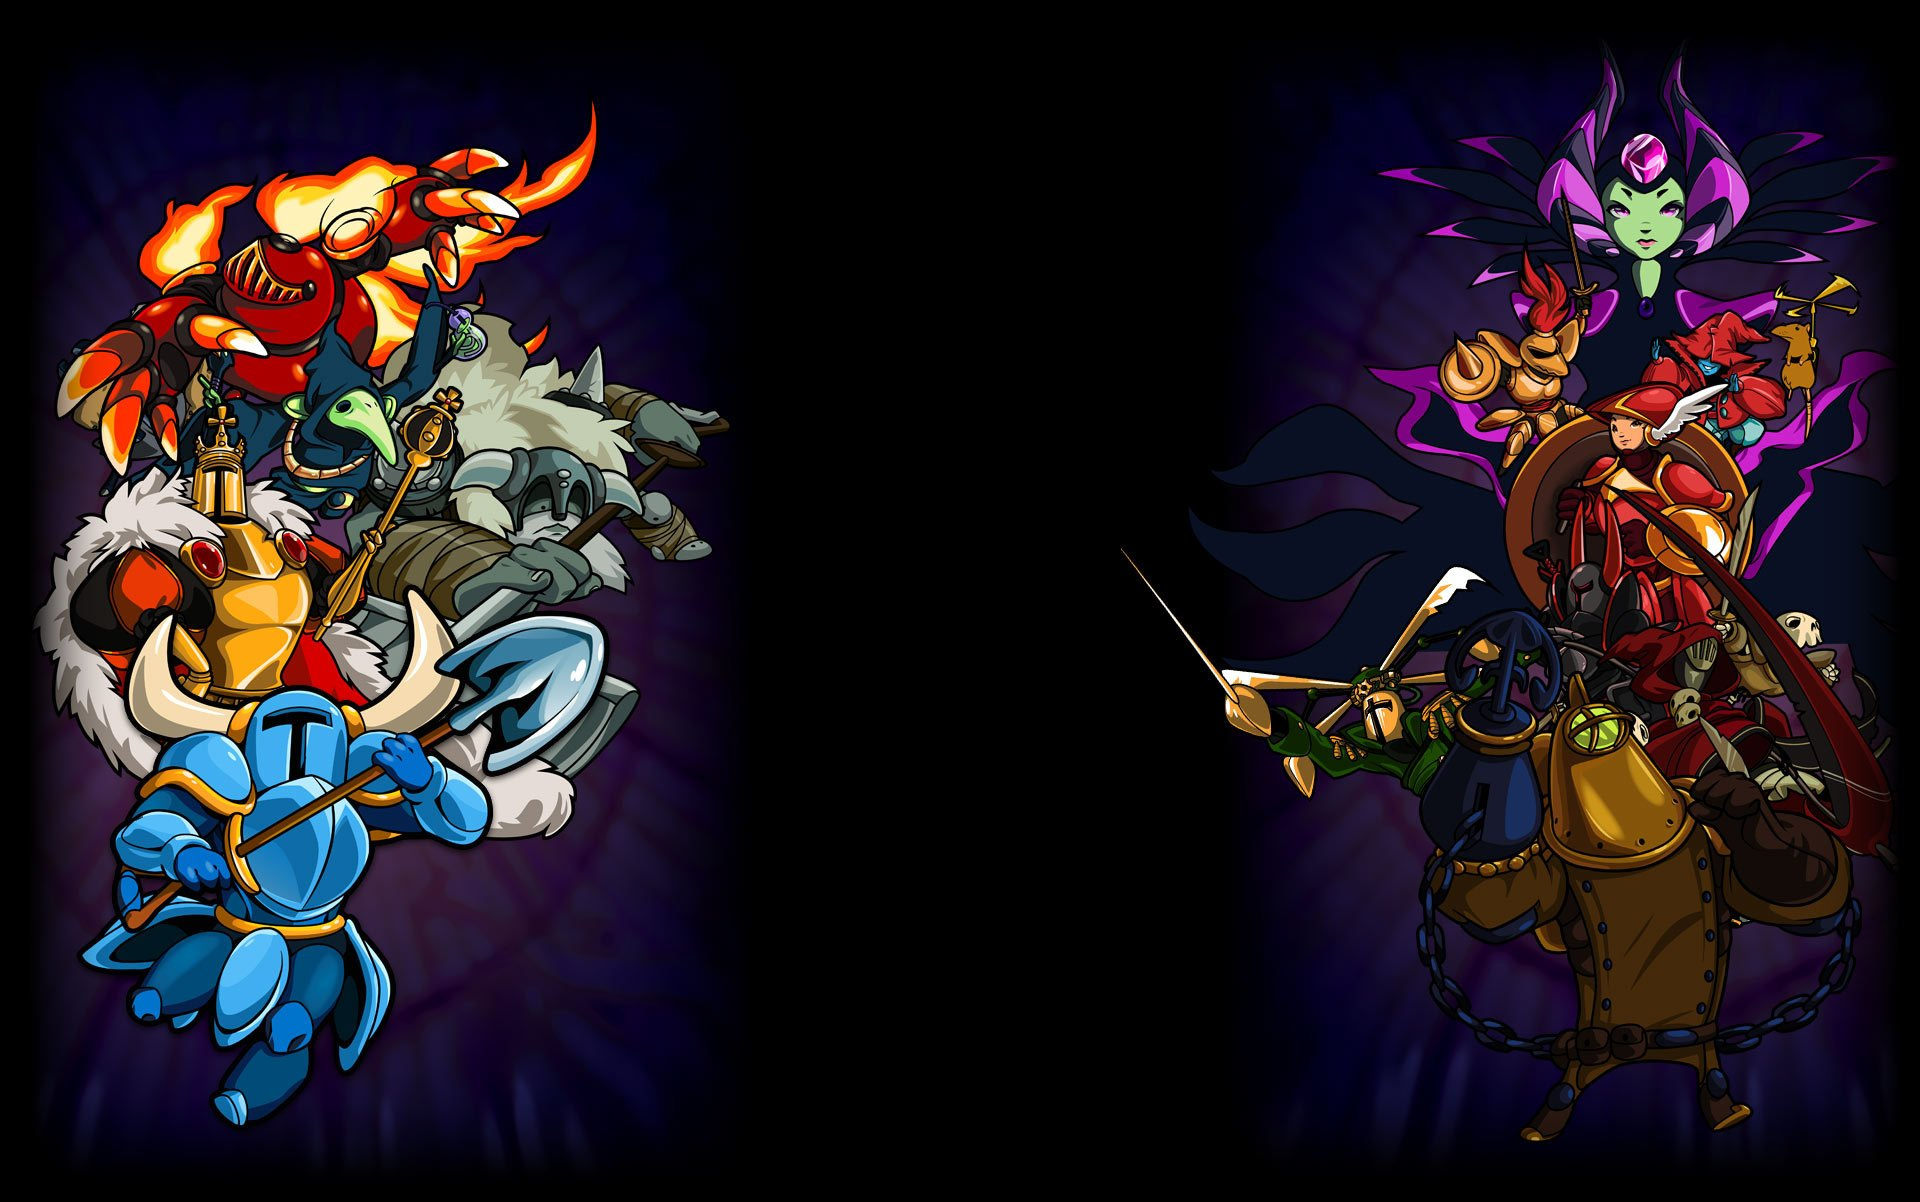 1 Polar Knight Shovel Knight Hd Wallpapers Background Images Wallpaper Abyss